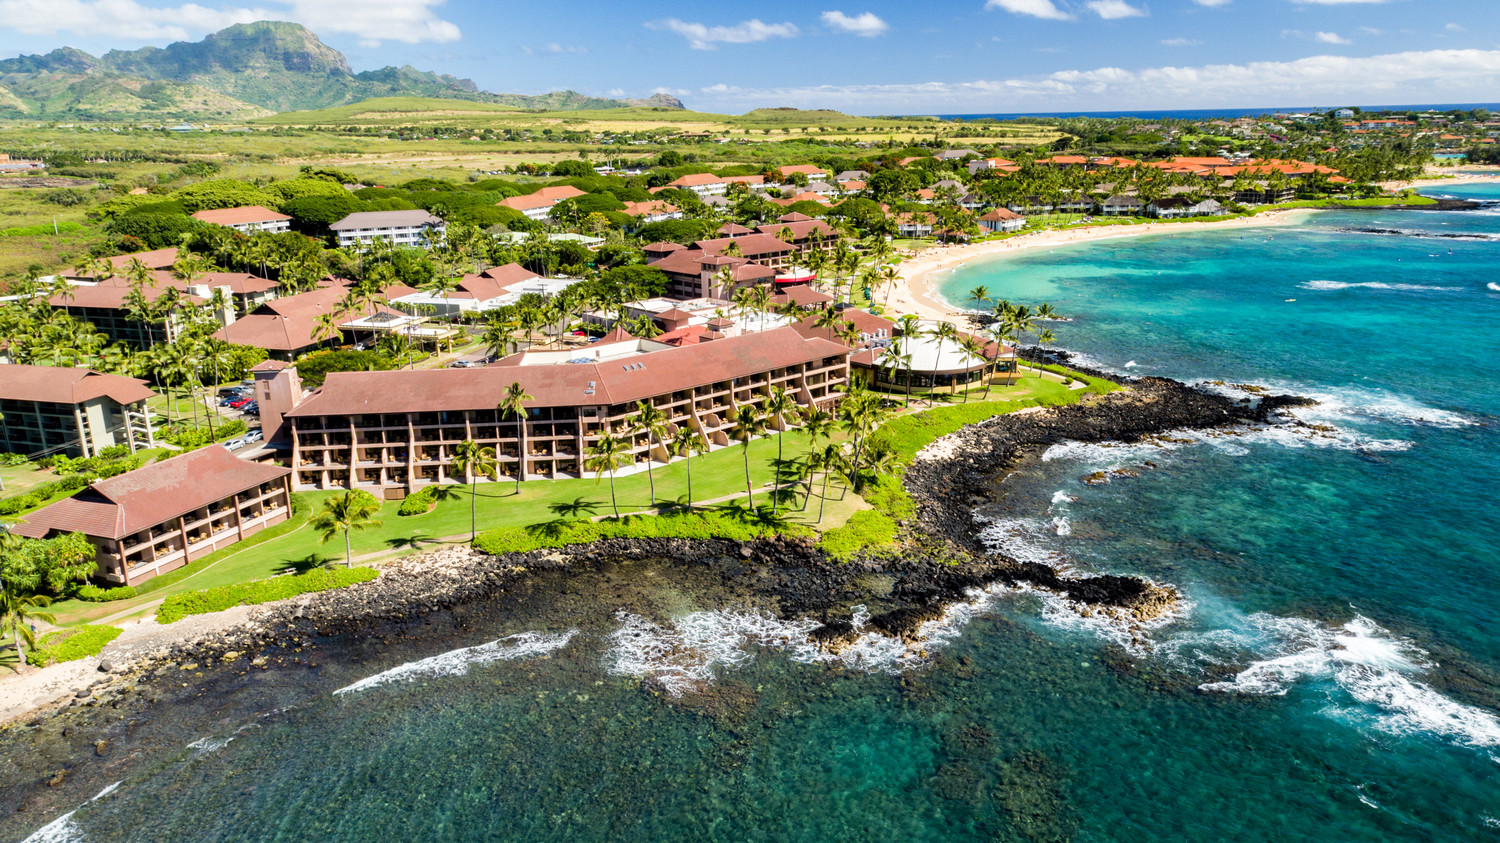 Sheraton Kauai Resort aerial exterior view of hotel